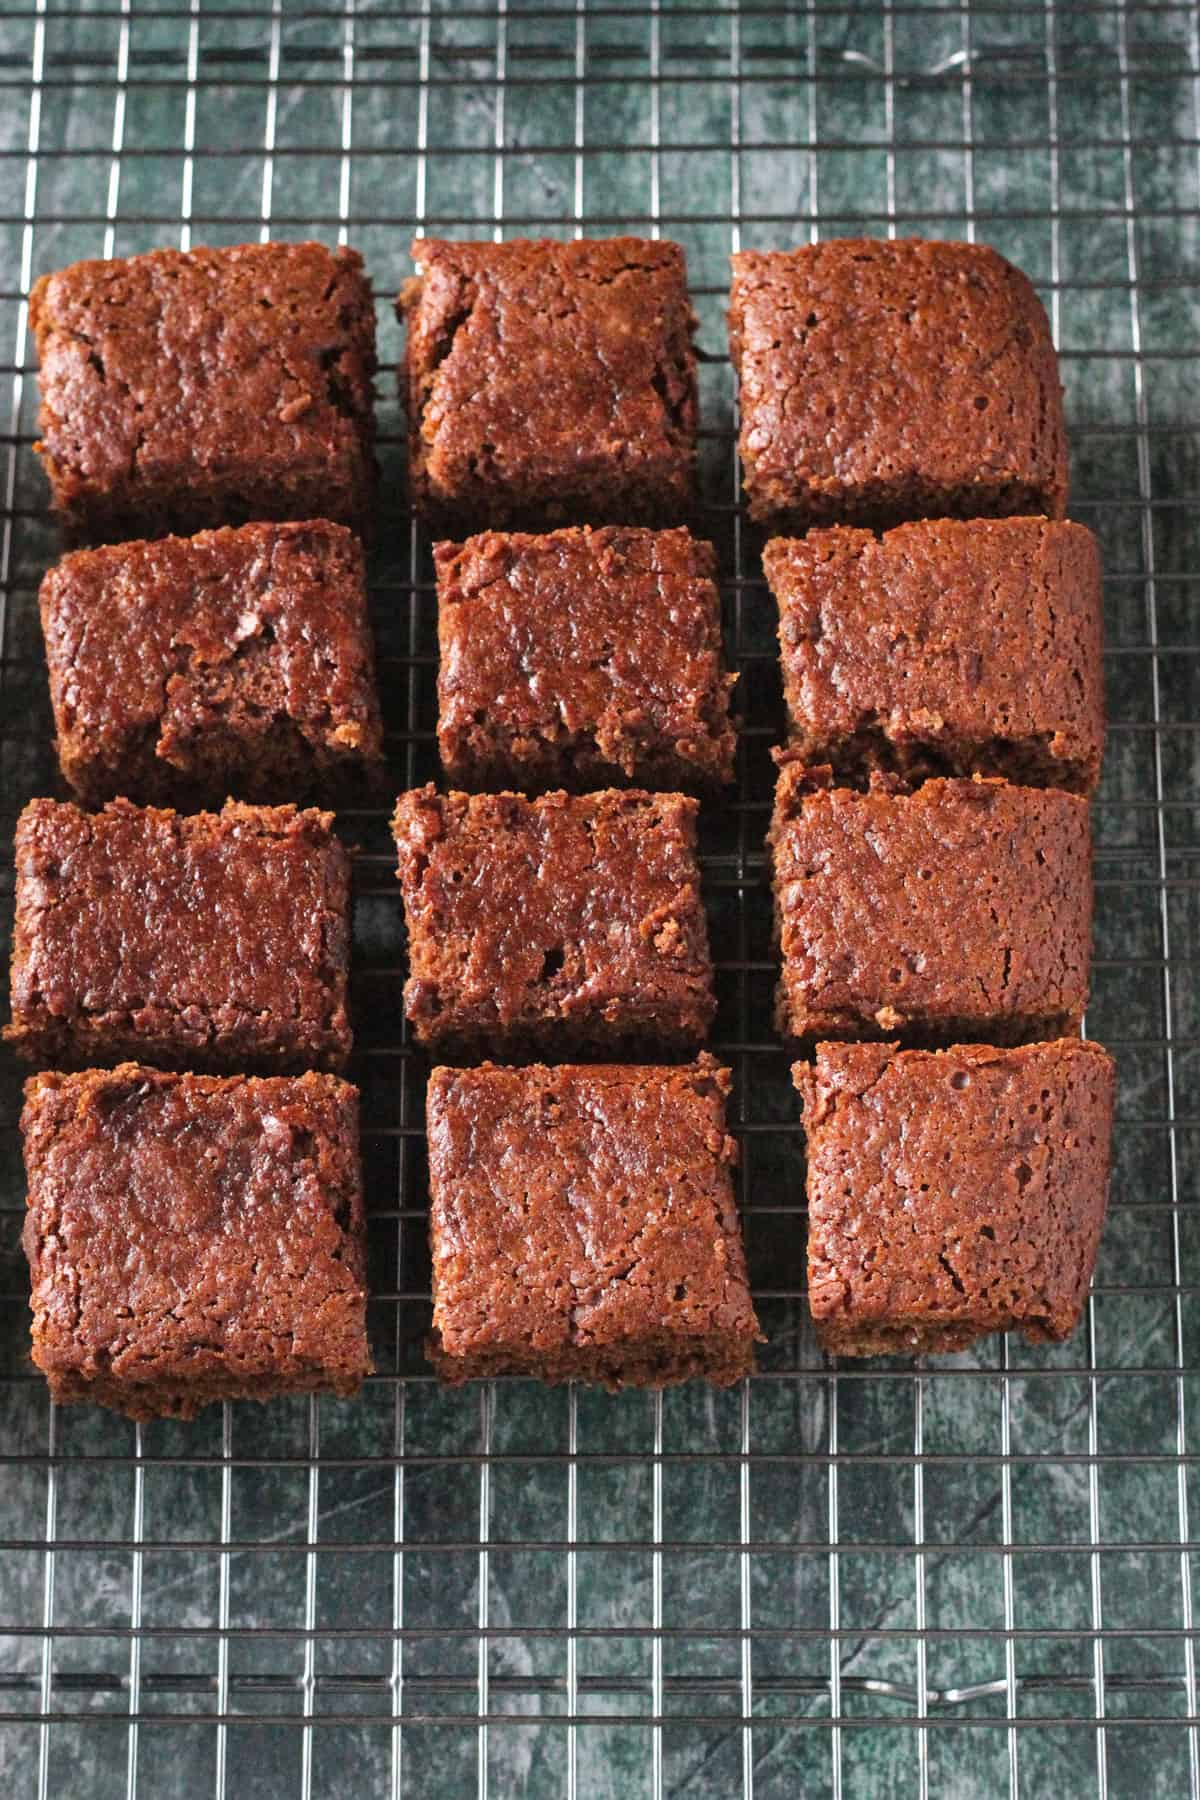 Squares of gingerbread cake on a wire cooling rack.